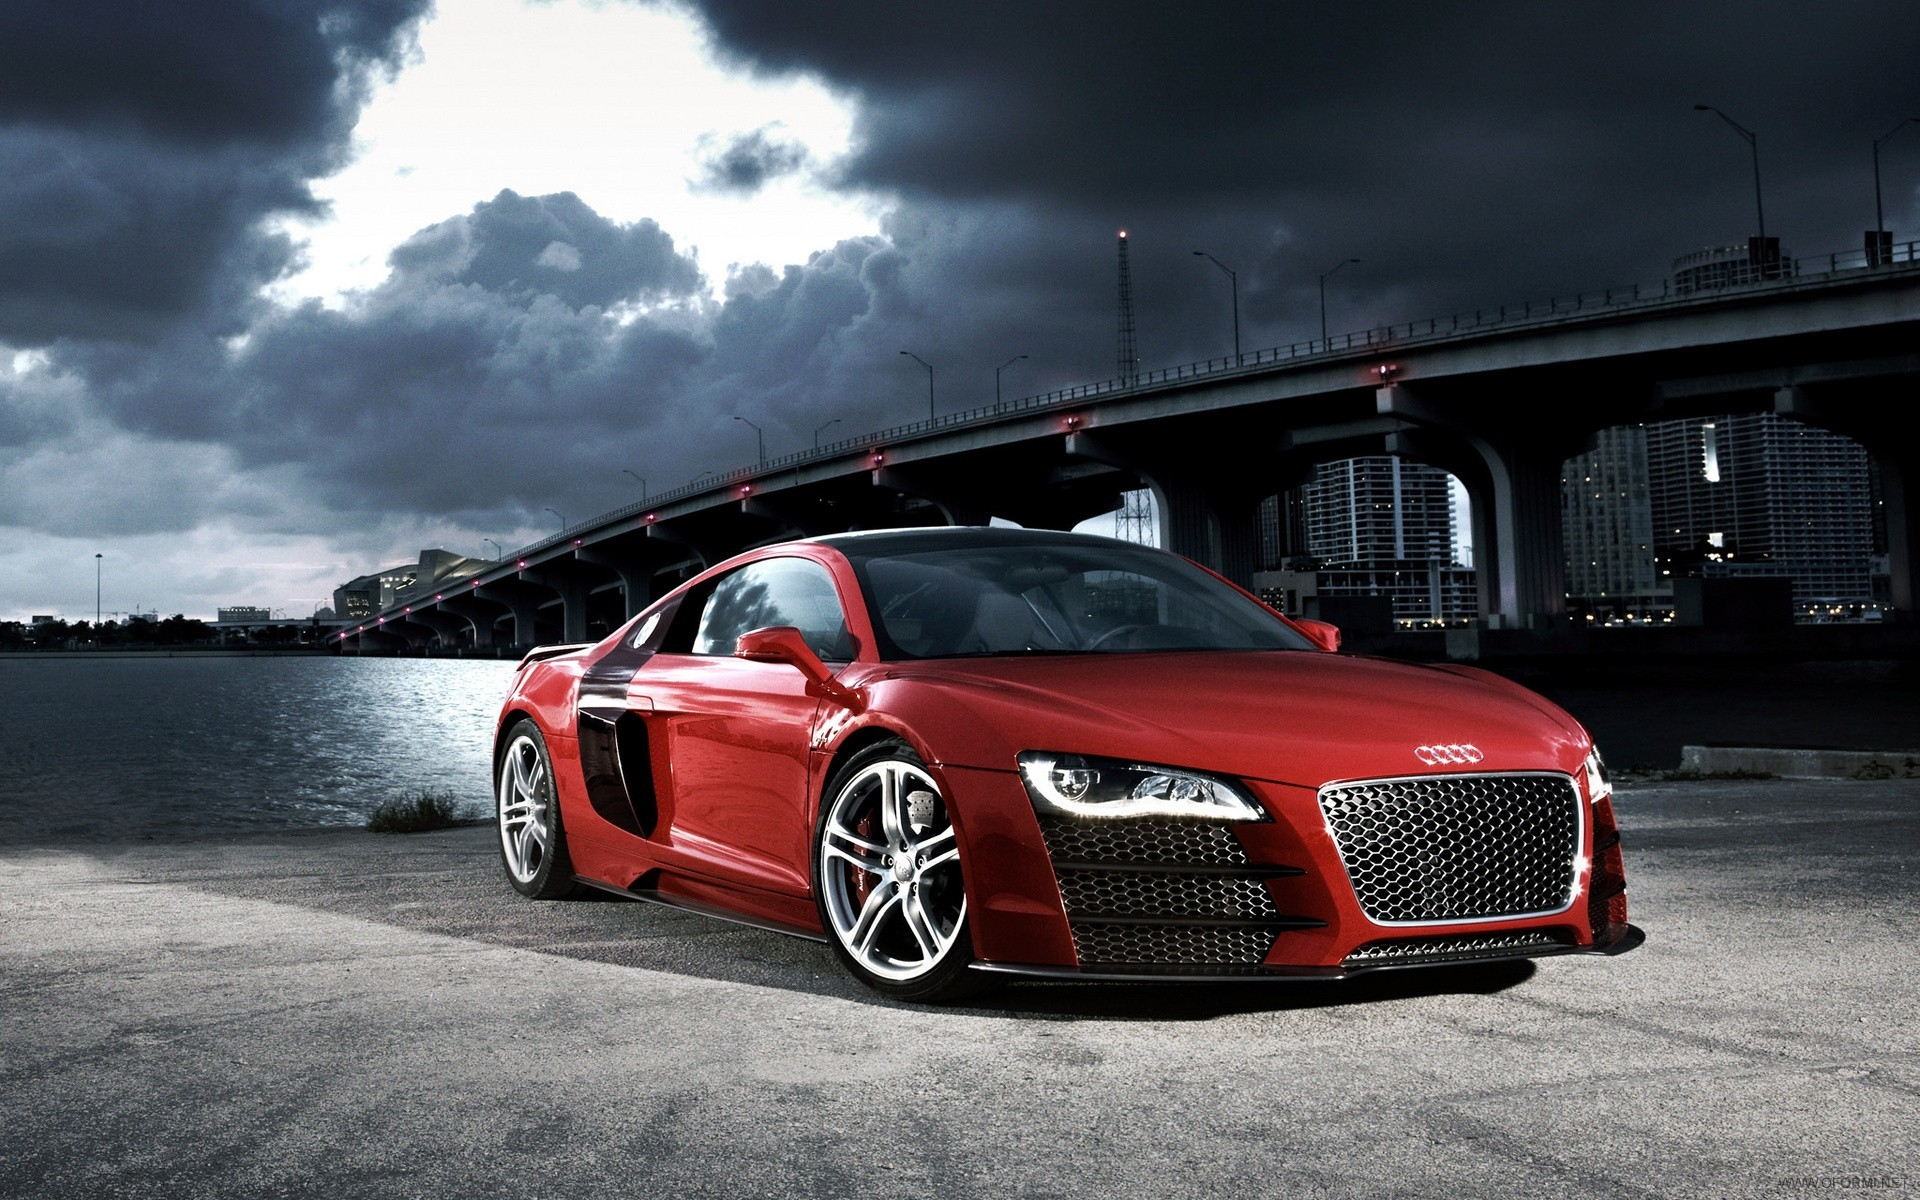 cars Bridges Audi audi HD Wallpaper